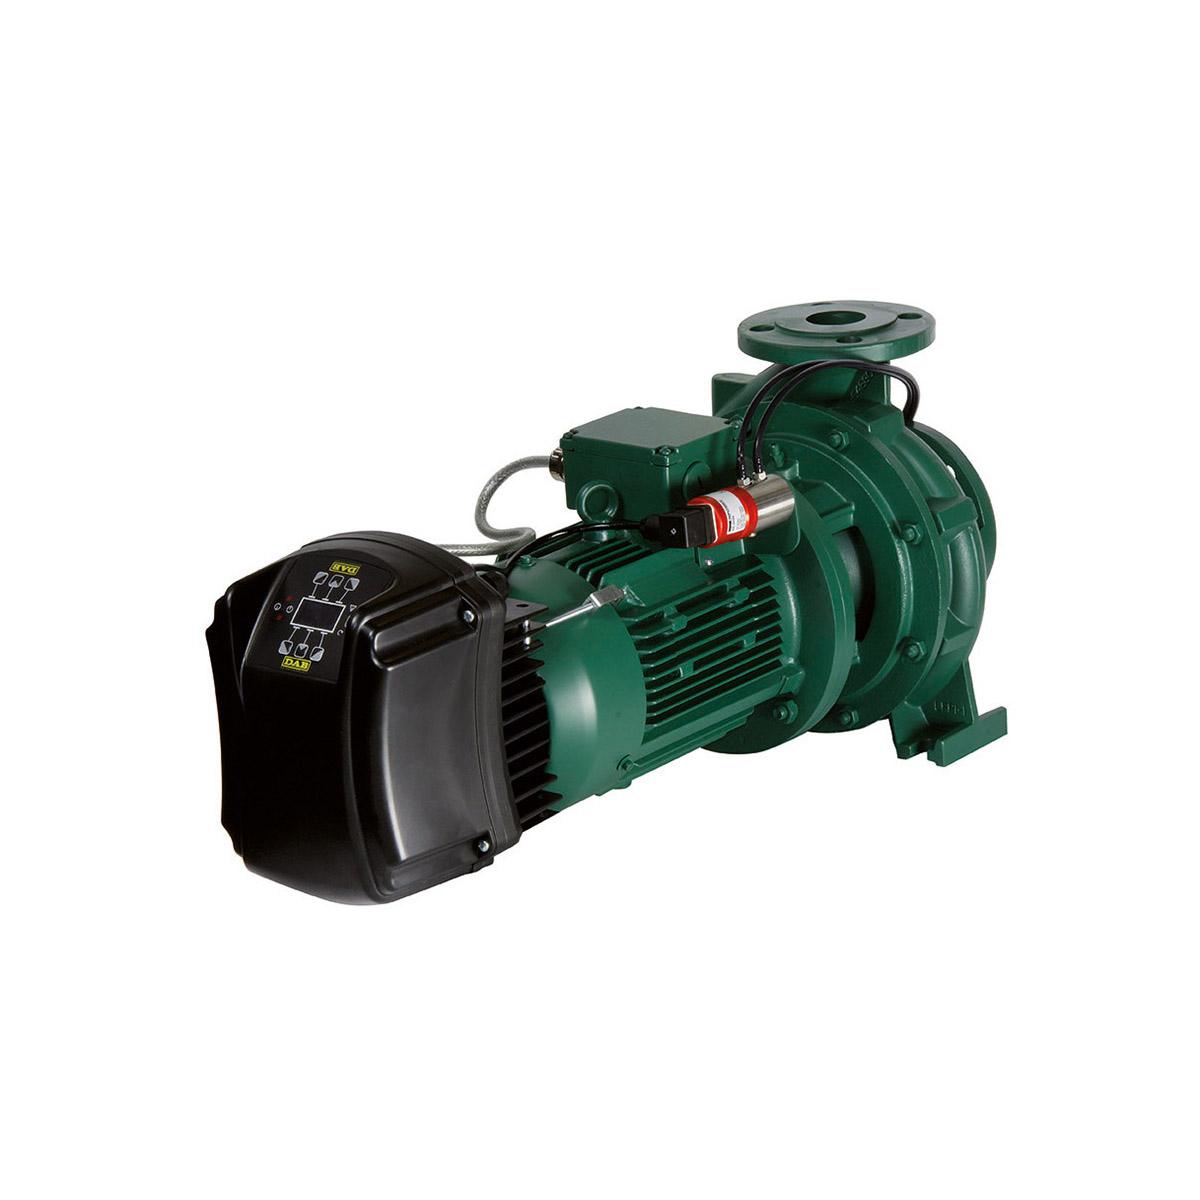 DAB Electronic Centrifugal Pump NKM-GE MCE-P, NKP-GE MCE-P